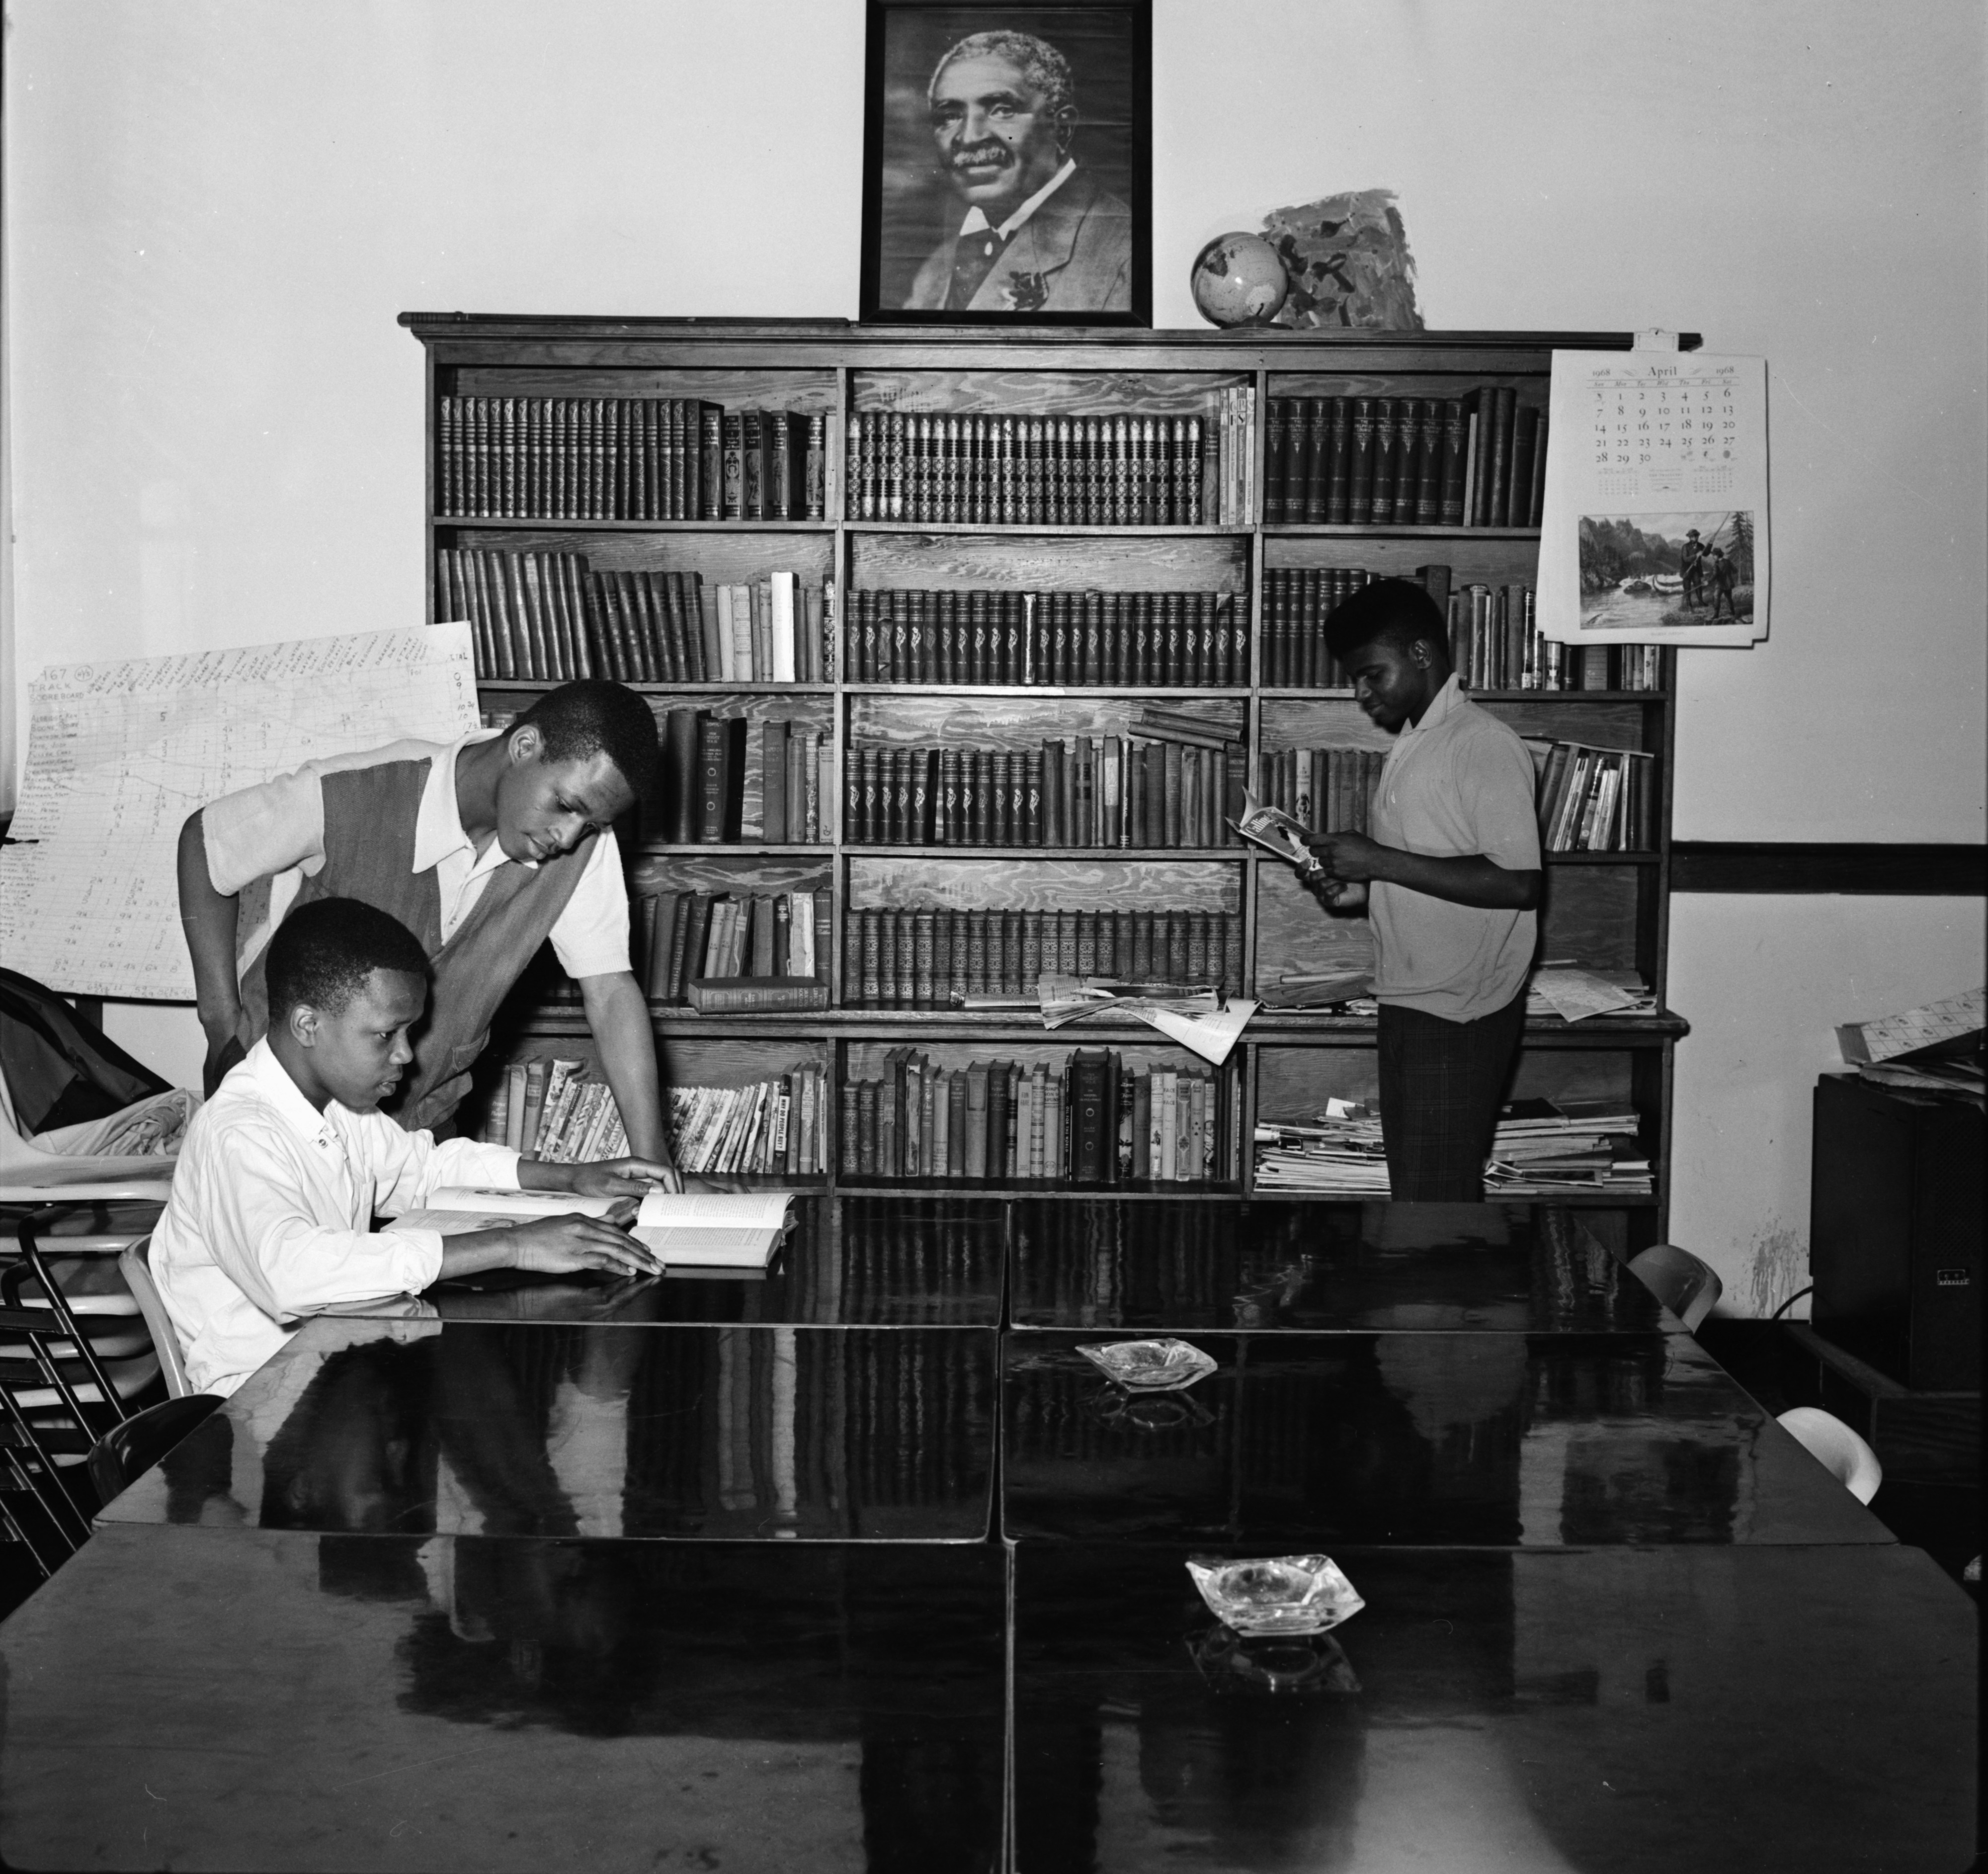 Ypsilanti Youths Enjoy Library at Parkridge Community Center, April 1968 image